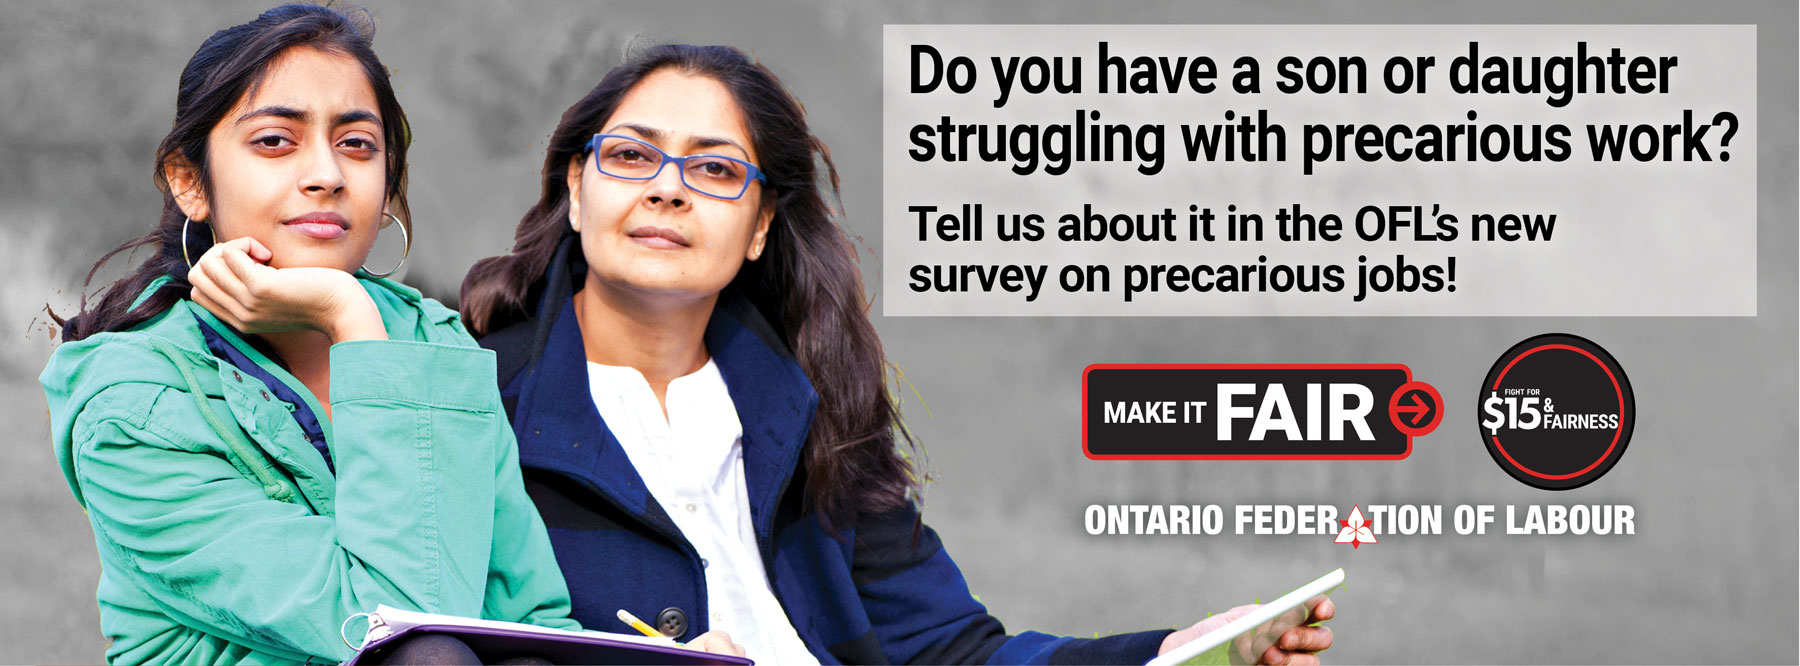 OFL_MIF_survey_facebook_parent_851x315_v3